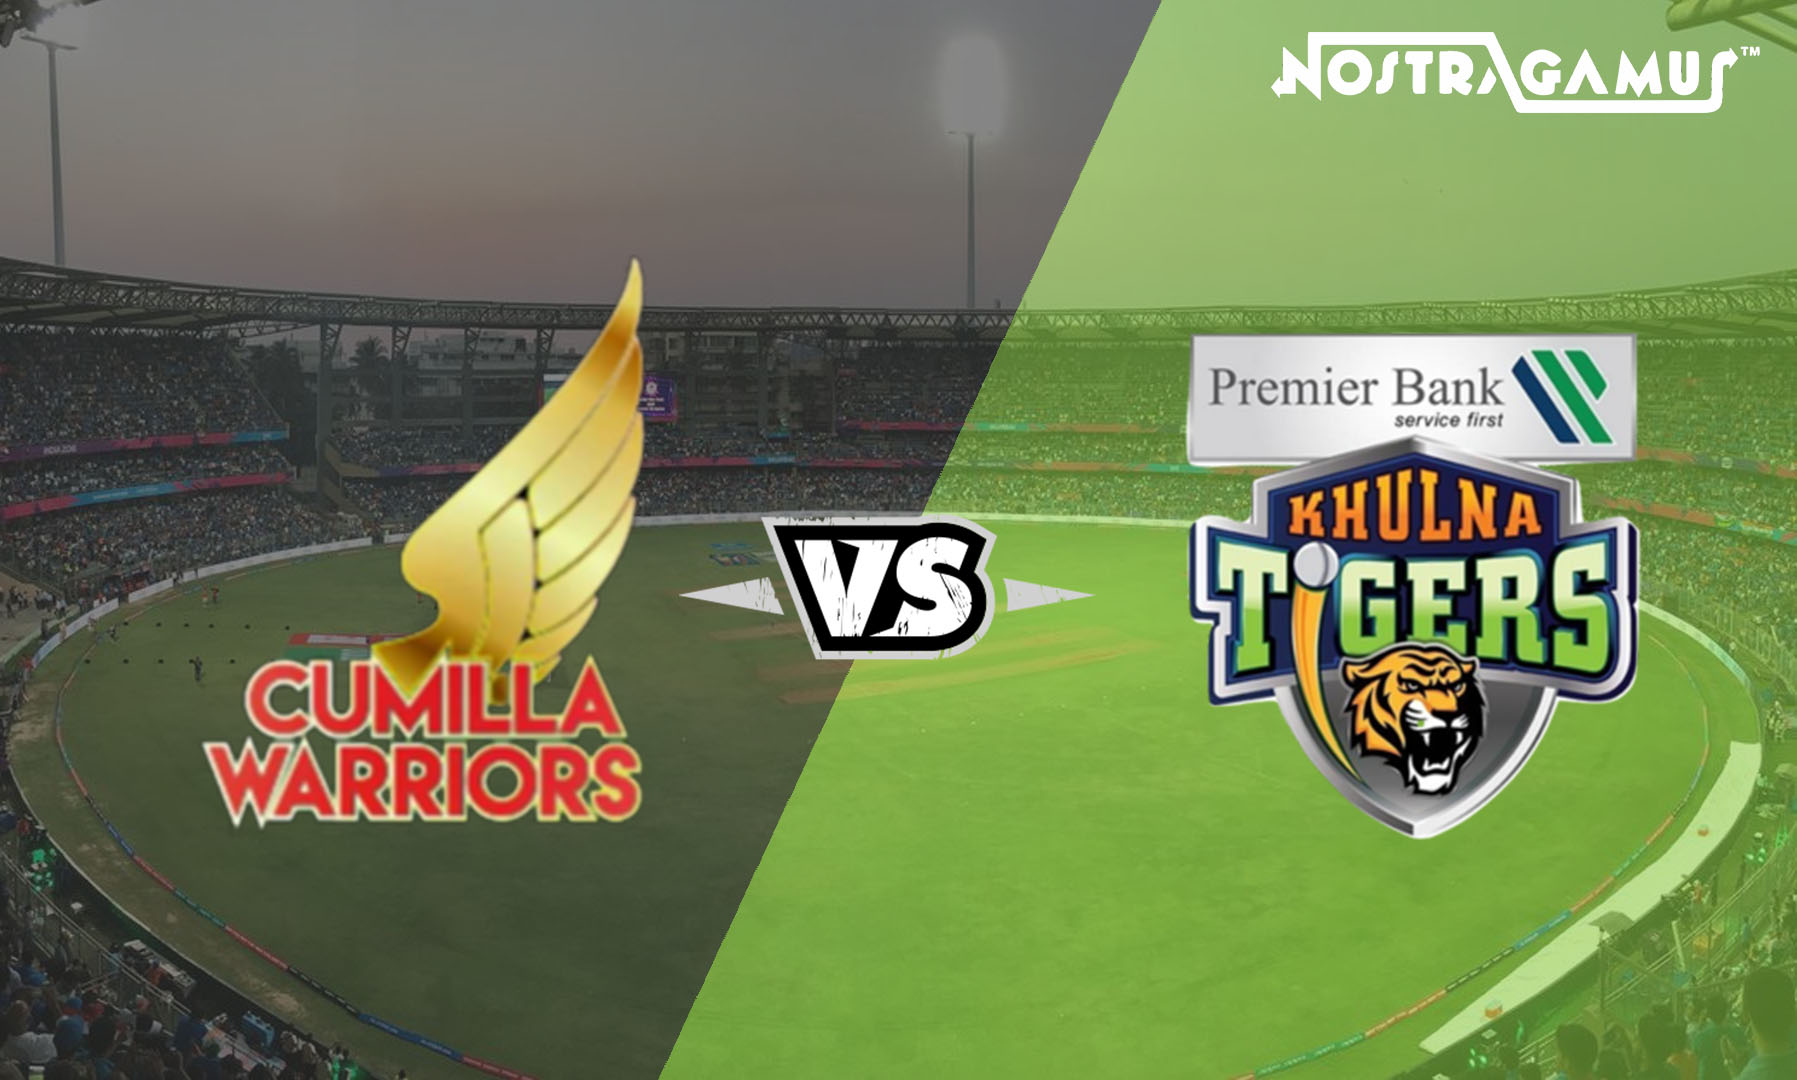 Cumilla Warriors vs Khulna Tigers: BPL 2019 Match Prediction